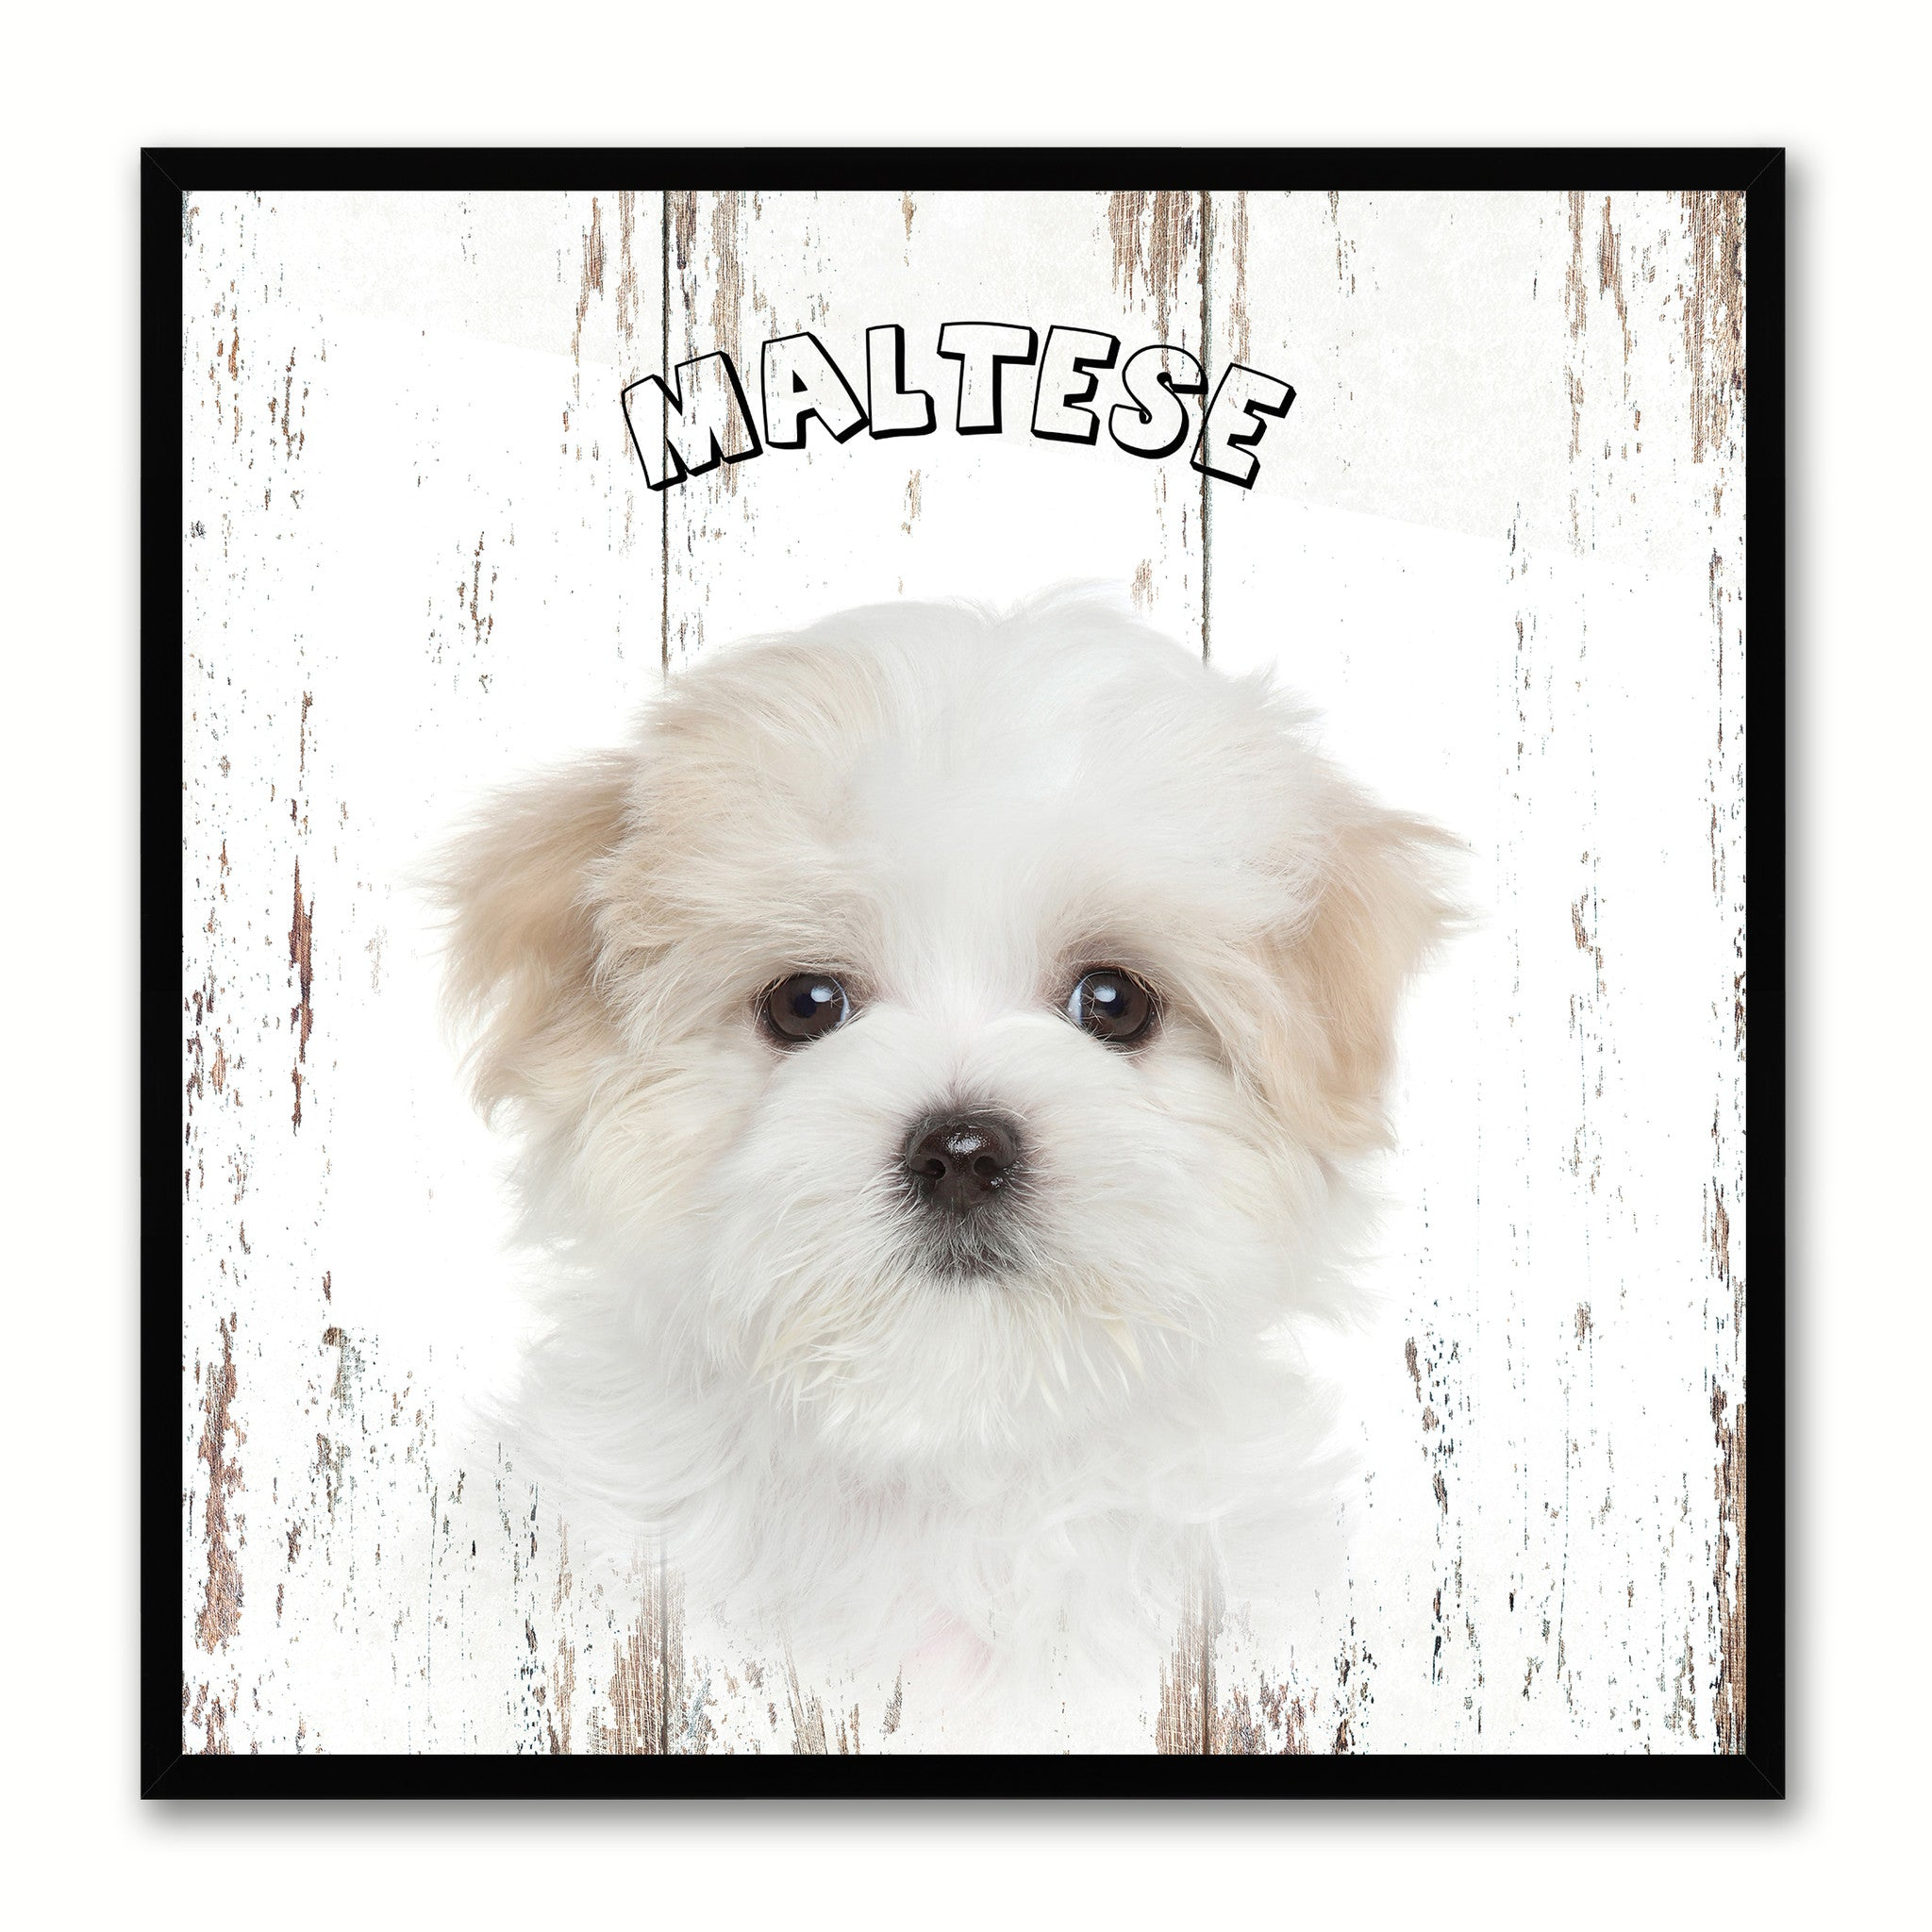 Maltese Dog Canvas Print Picture Frame Gift Home Decor Wall Art Decoration